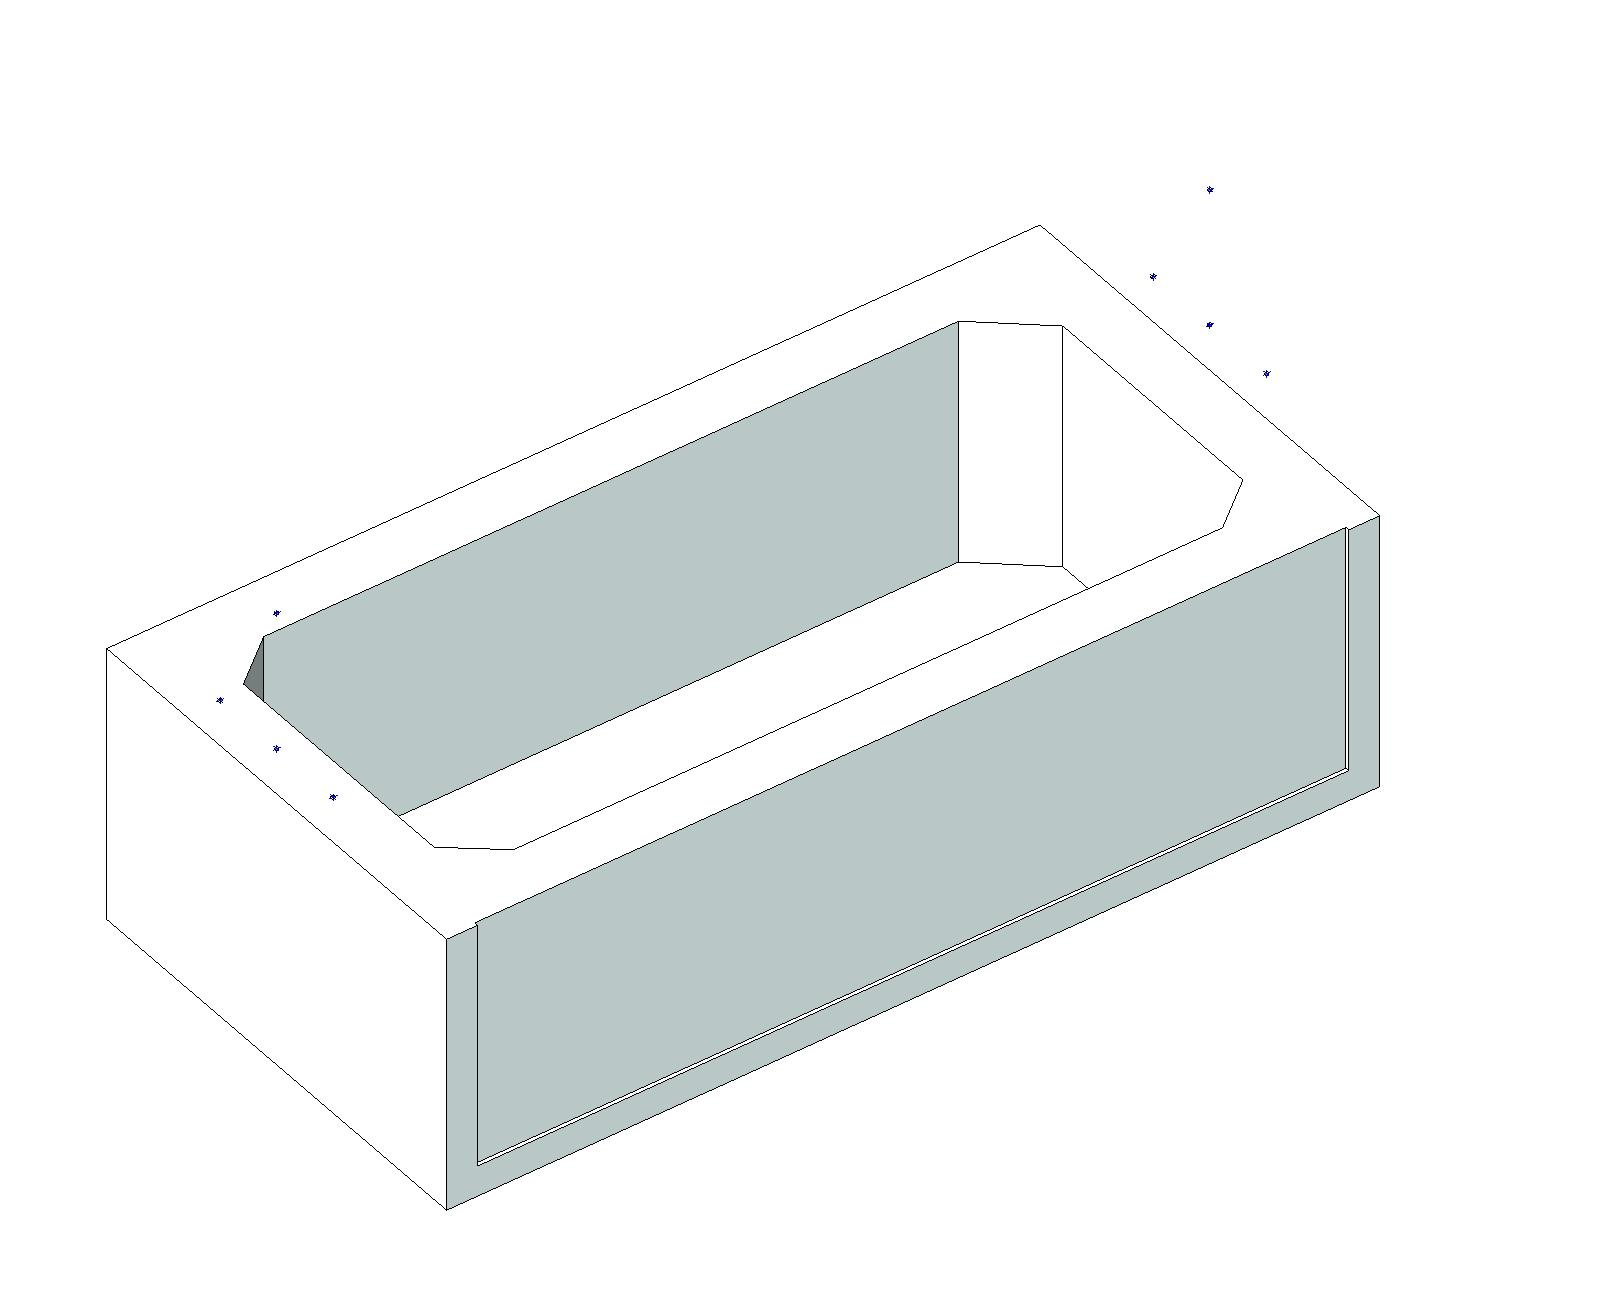 Simple Catalog Of Bathroom Fixtures By American Standard In AUTOCAD DRAWING